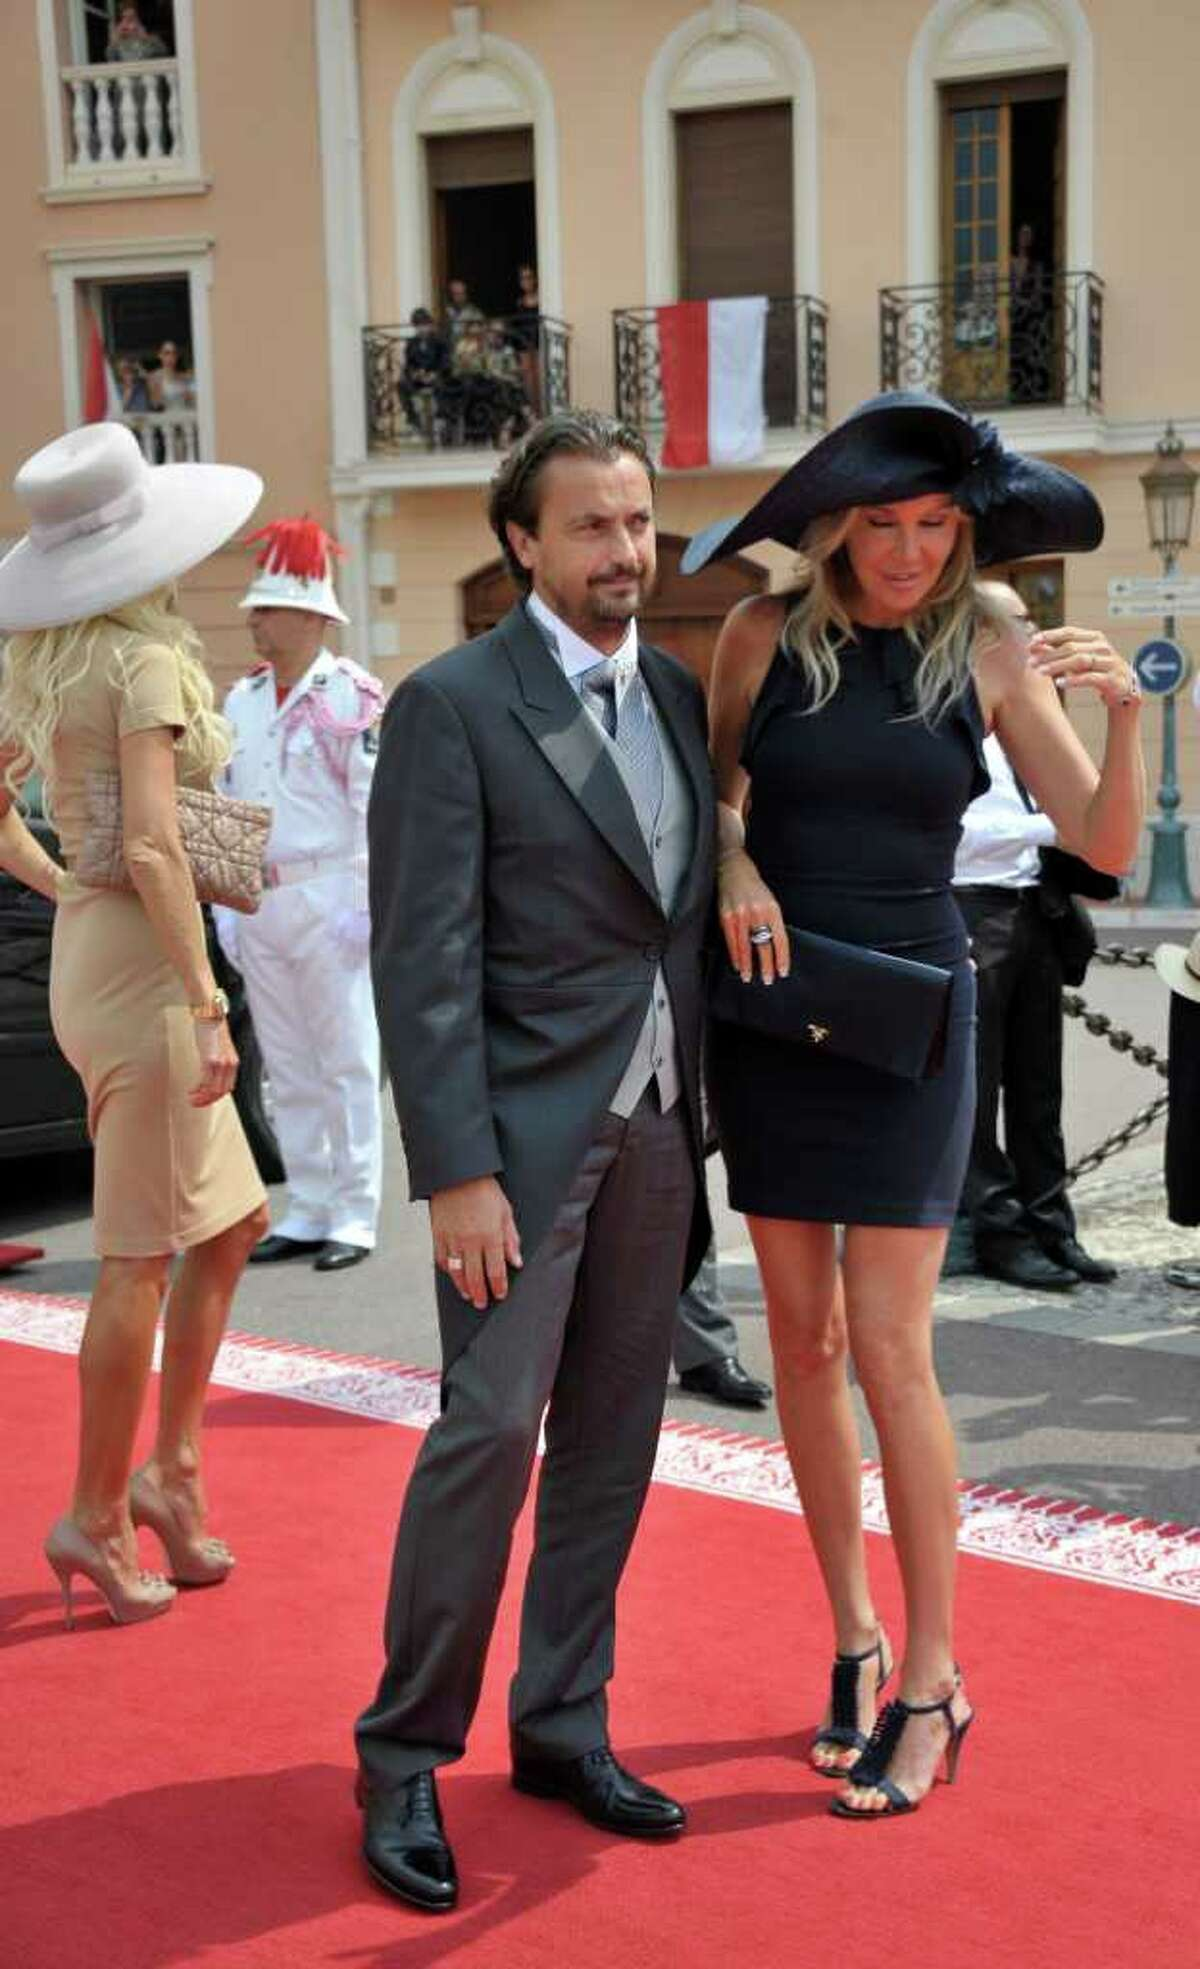 Former French tennis player Henri Leconte and his wife Florentine arrive at the Monaco palace for the religious wedding ceremony of Prince Albert II of Monaco and Charlene Princess of Monaco, Saturday, July 2, 2011.